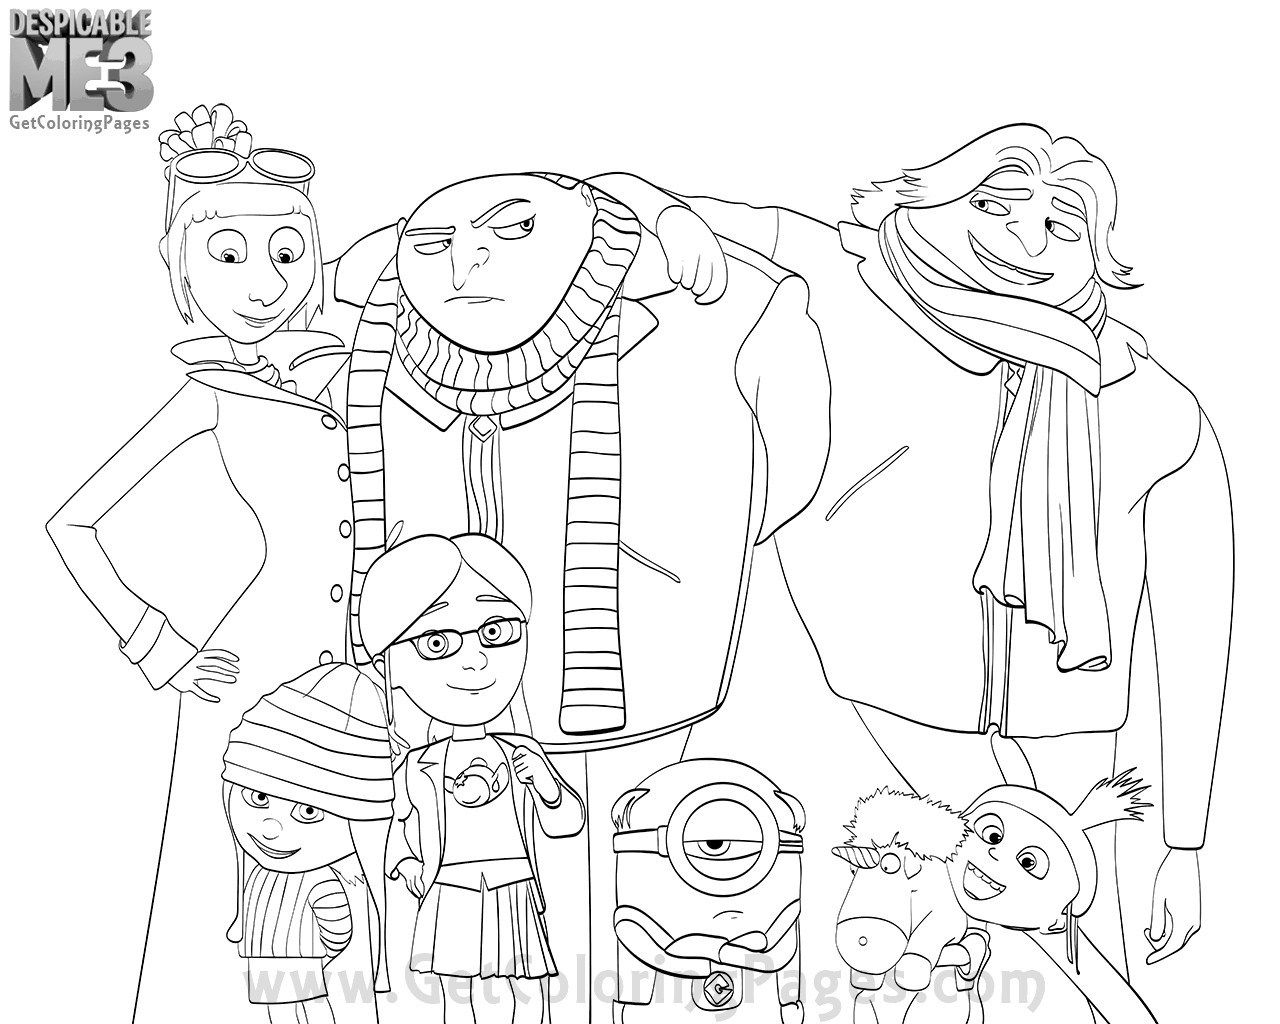 despicable me 3 coloring pages creative photo of despicable me 3 coloring pages pages despicable me 3 coloring